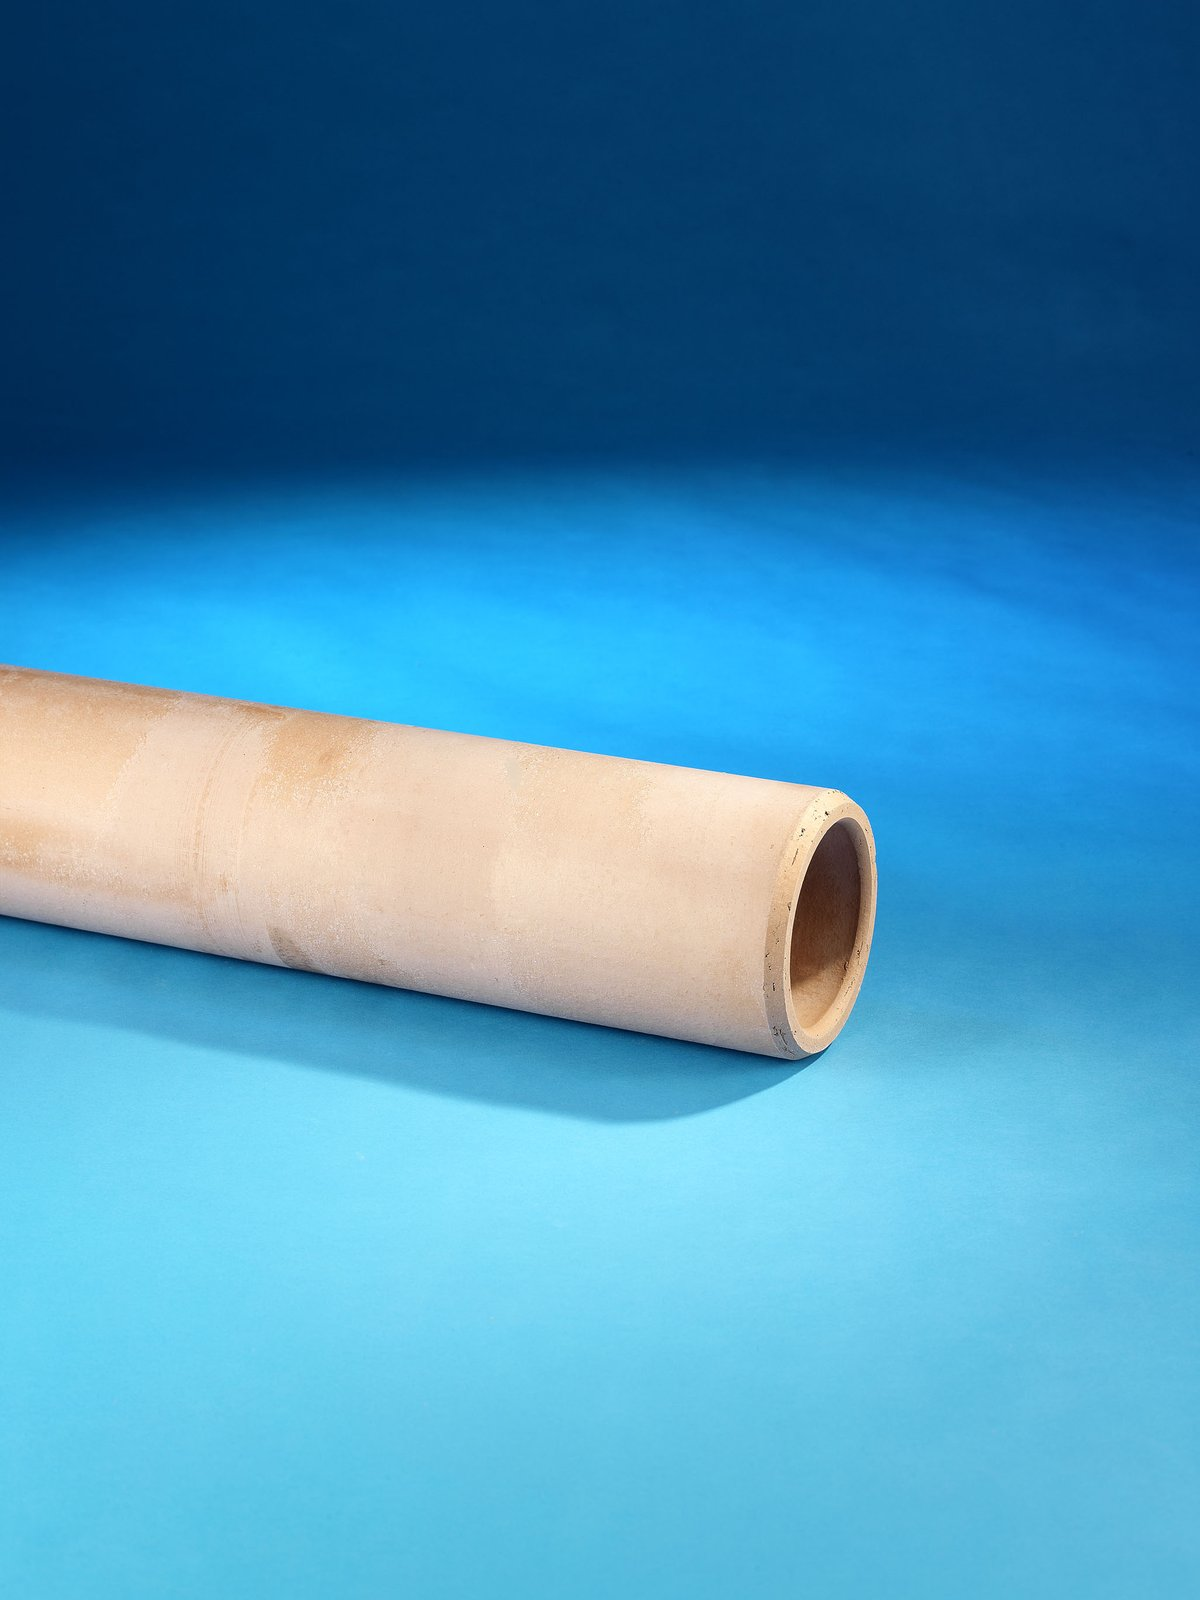 225mm Pipe 1.75m